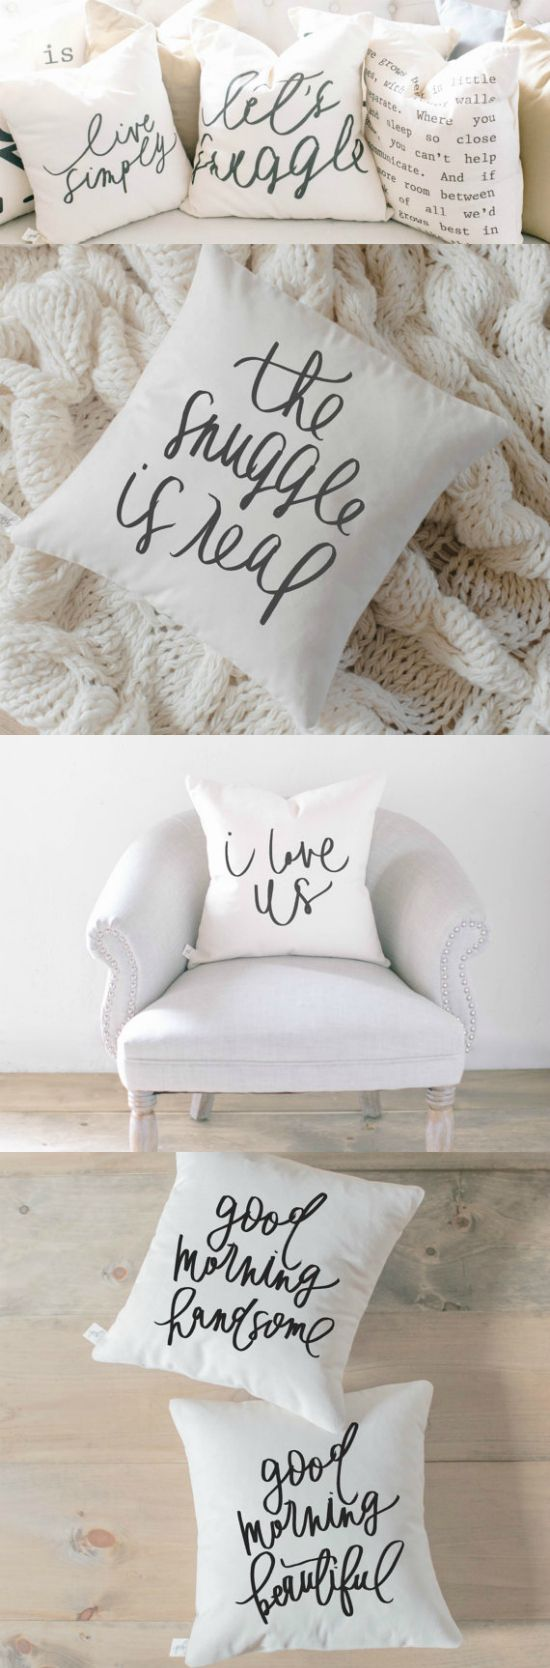 Best 25+ Throw pillows for couch ideas on Pinterest